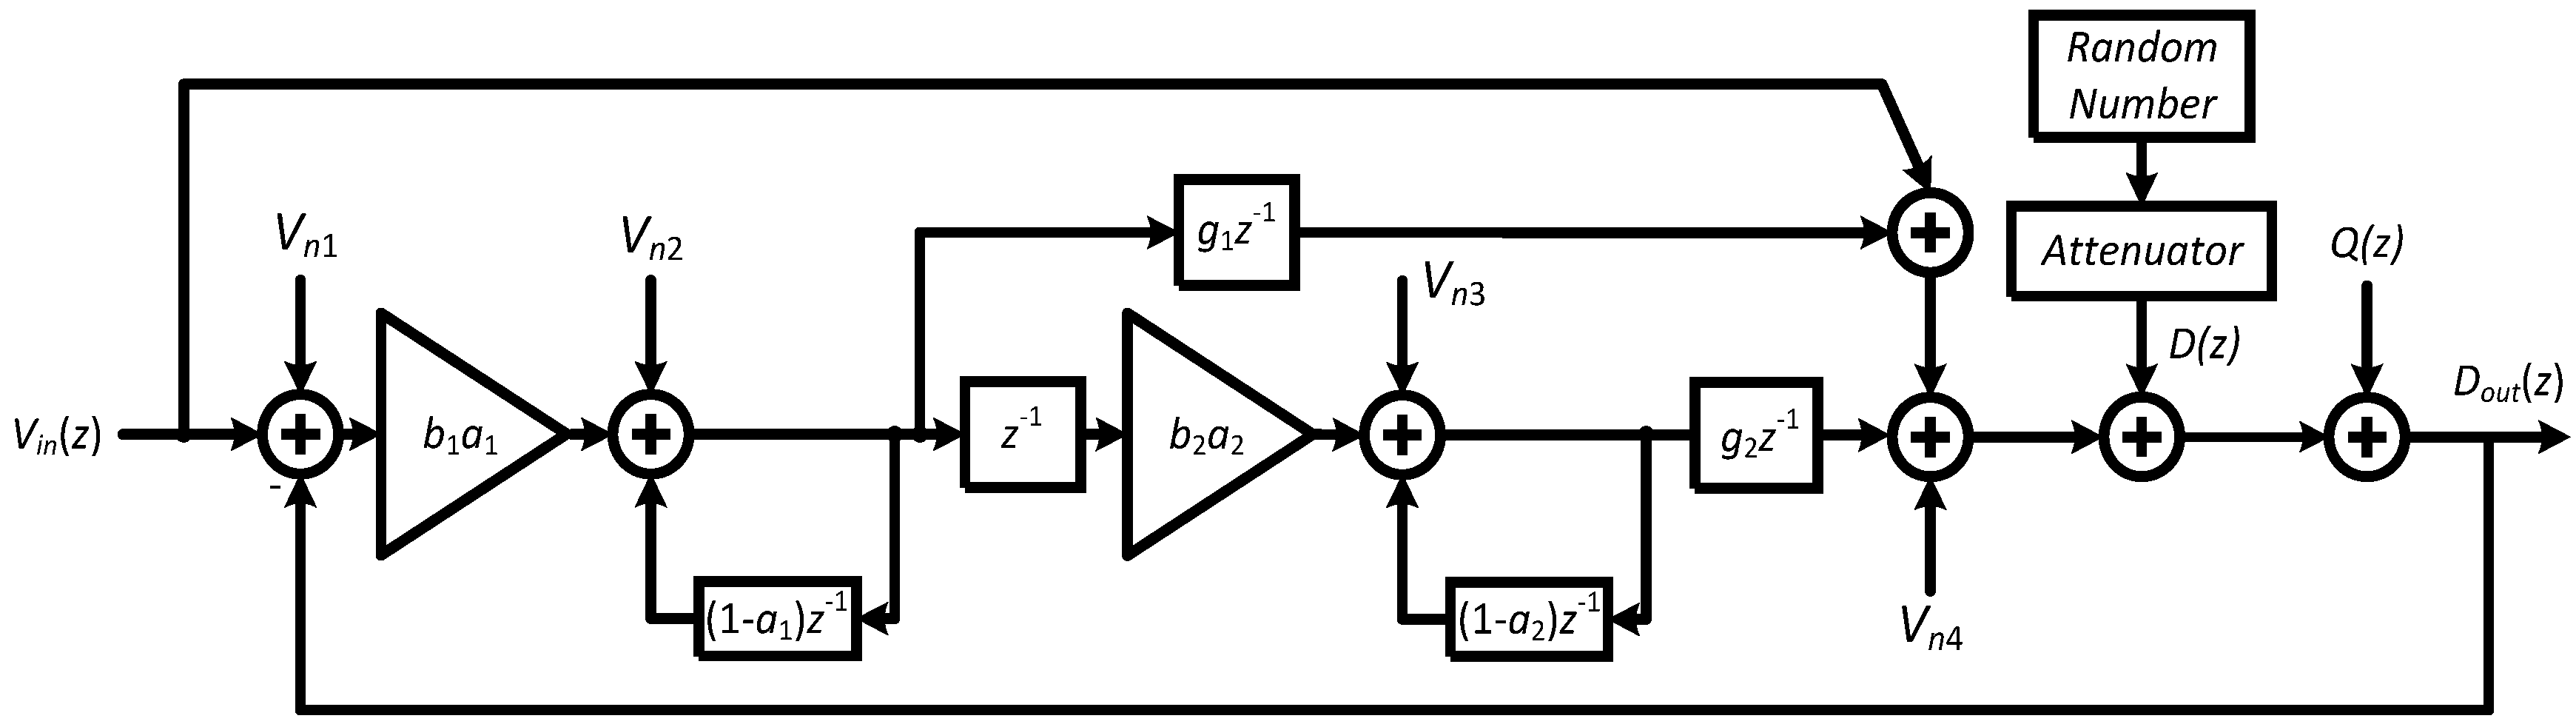 Electronics Free Full Text Ultra Low Power Design And Hardware Here Are The Diagrams For Intermediate Switches Marked With L1 L2 06 00067 G008